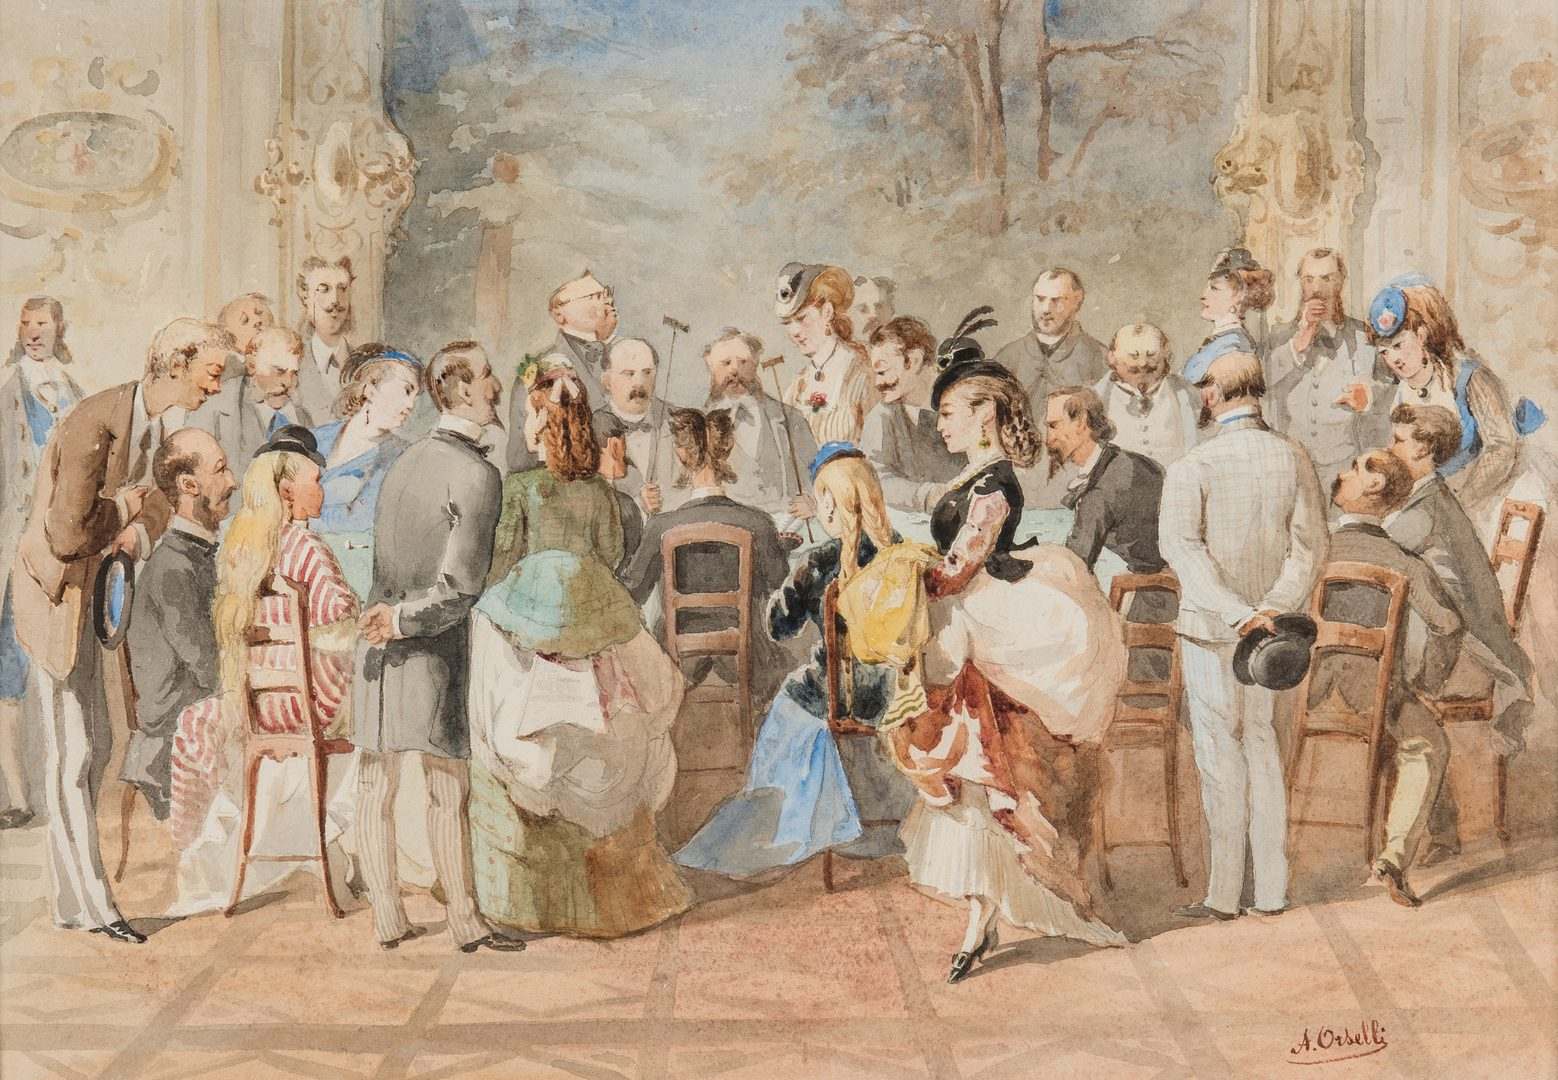 Lot 61: A. Orselli Watercolor on Paper, At the Roulette Table